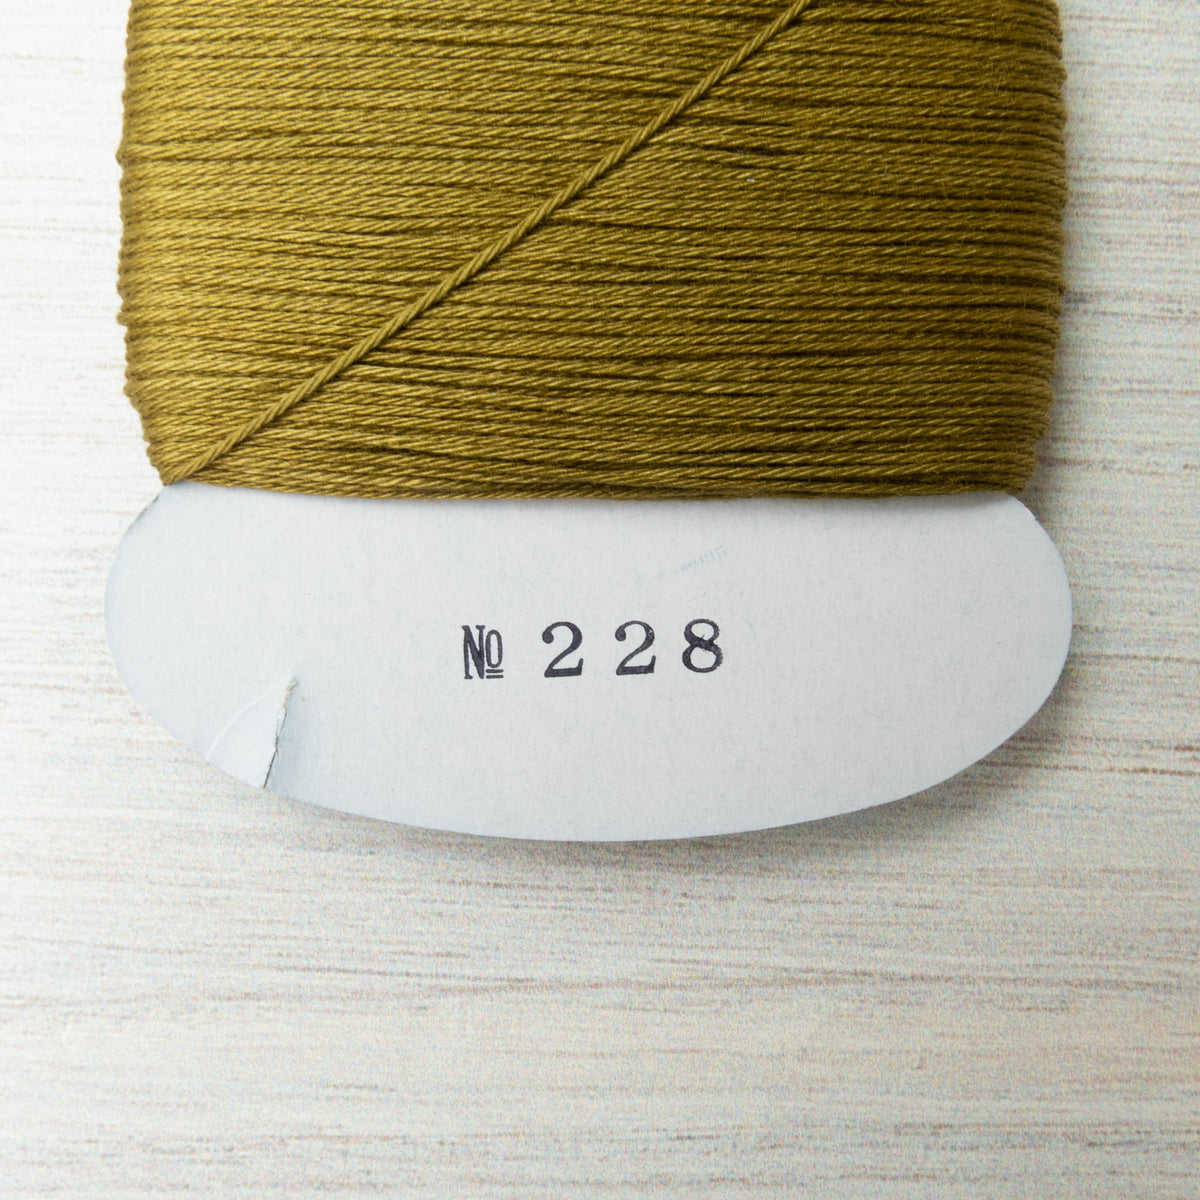 Daruma Carded Sashiko Thread - Uguisu (no. 228)